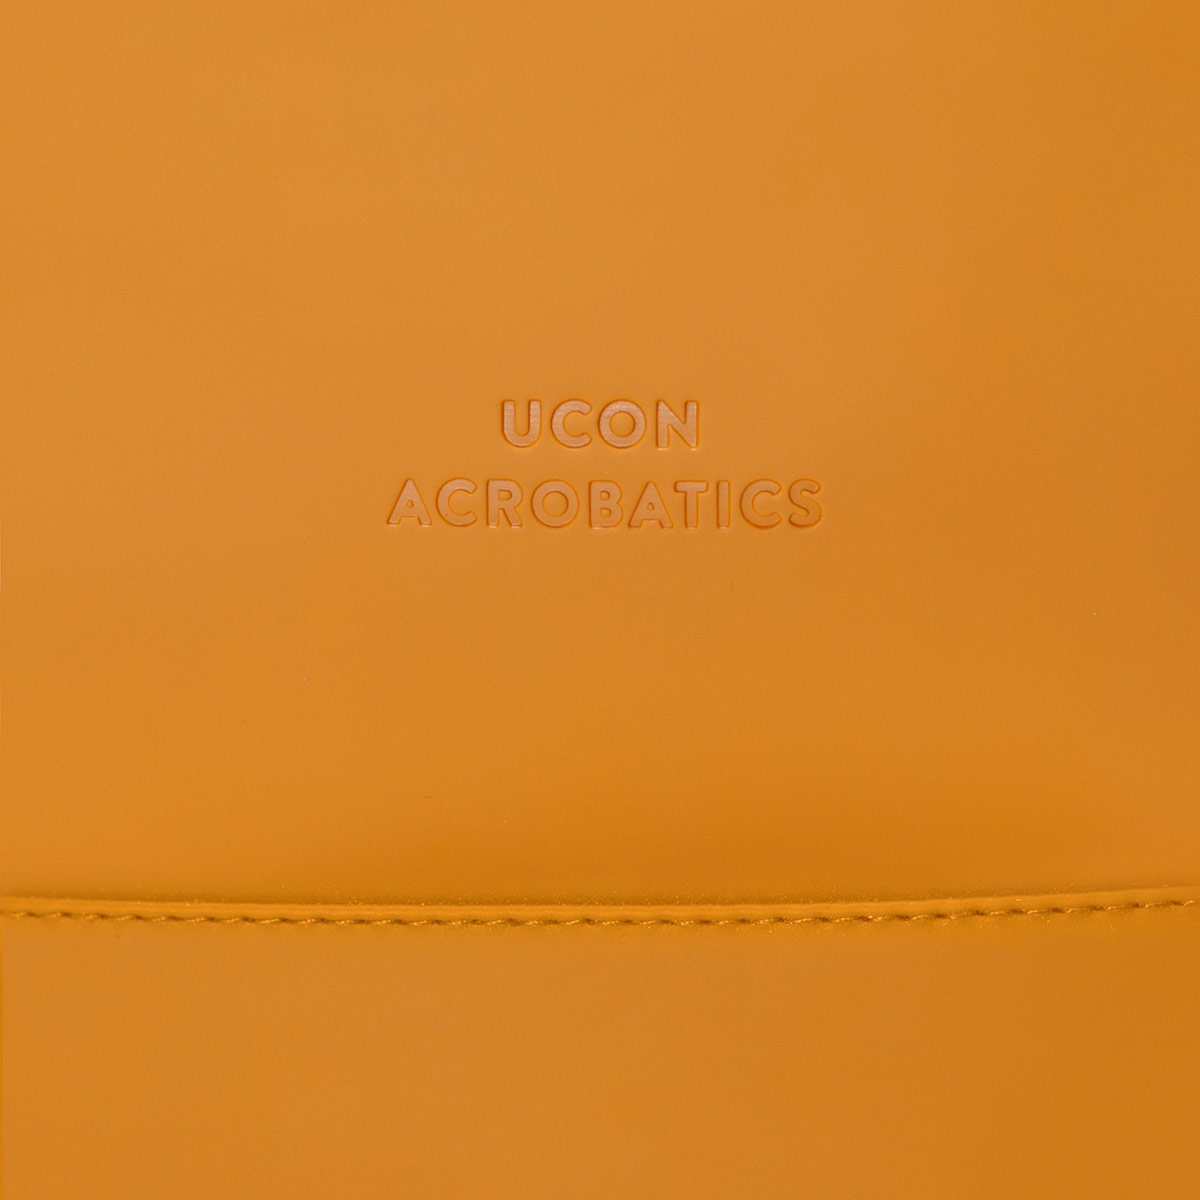 Ucon  Acrobatics Ucon Acrobatics   KARLO  BACKPACK Lotus  Series Honey Mustard